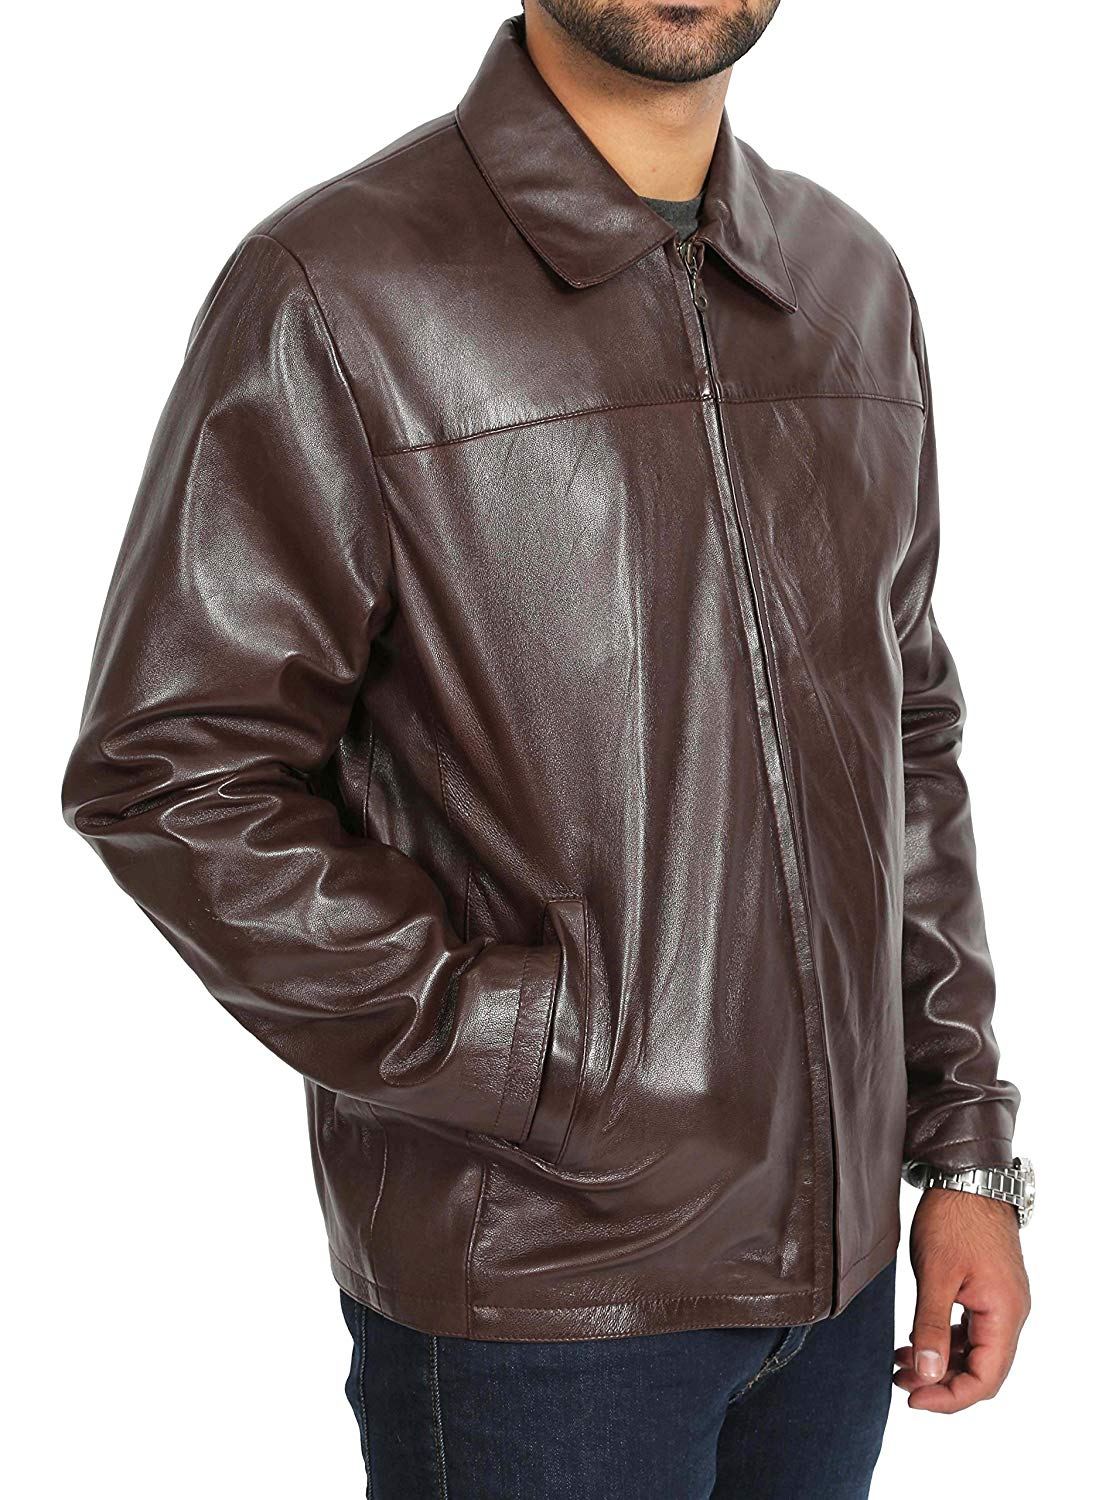 A1 FASHION GOODS Mens Leather Jacket Brown Zip Up Box Classic Most Popular Easy Fit Coat - Tony